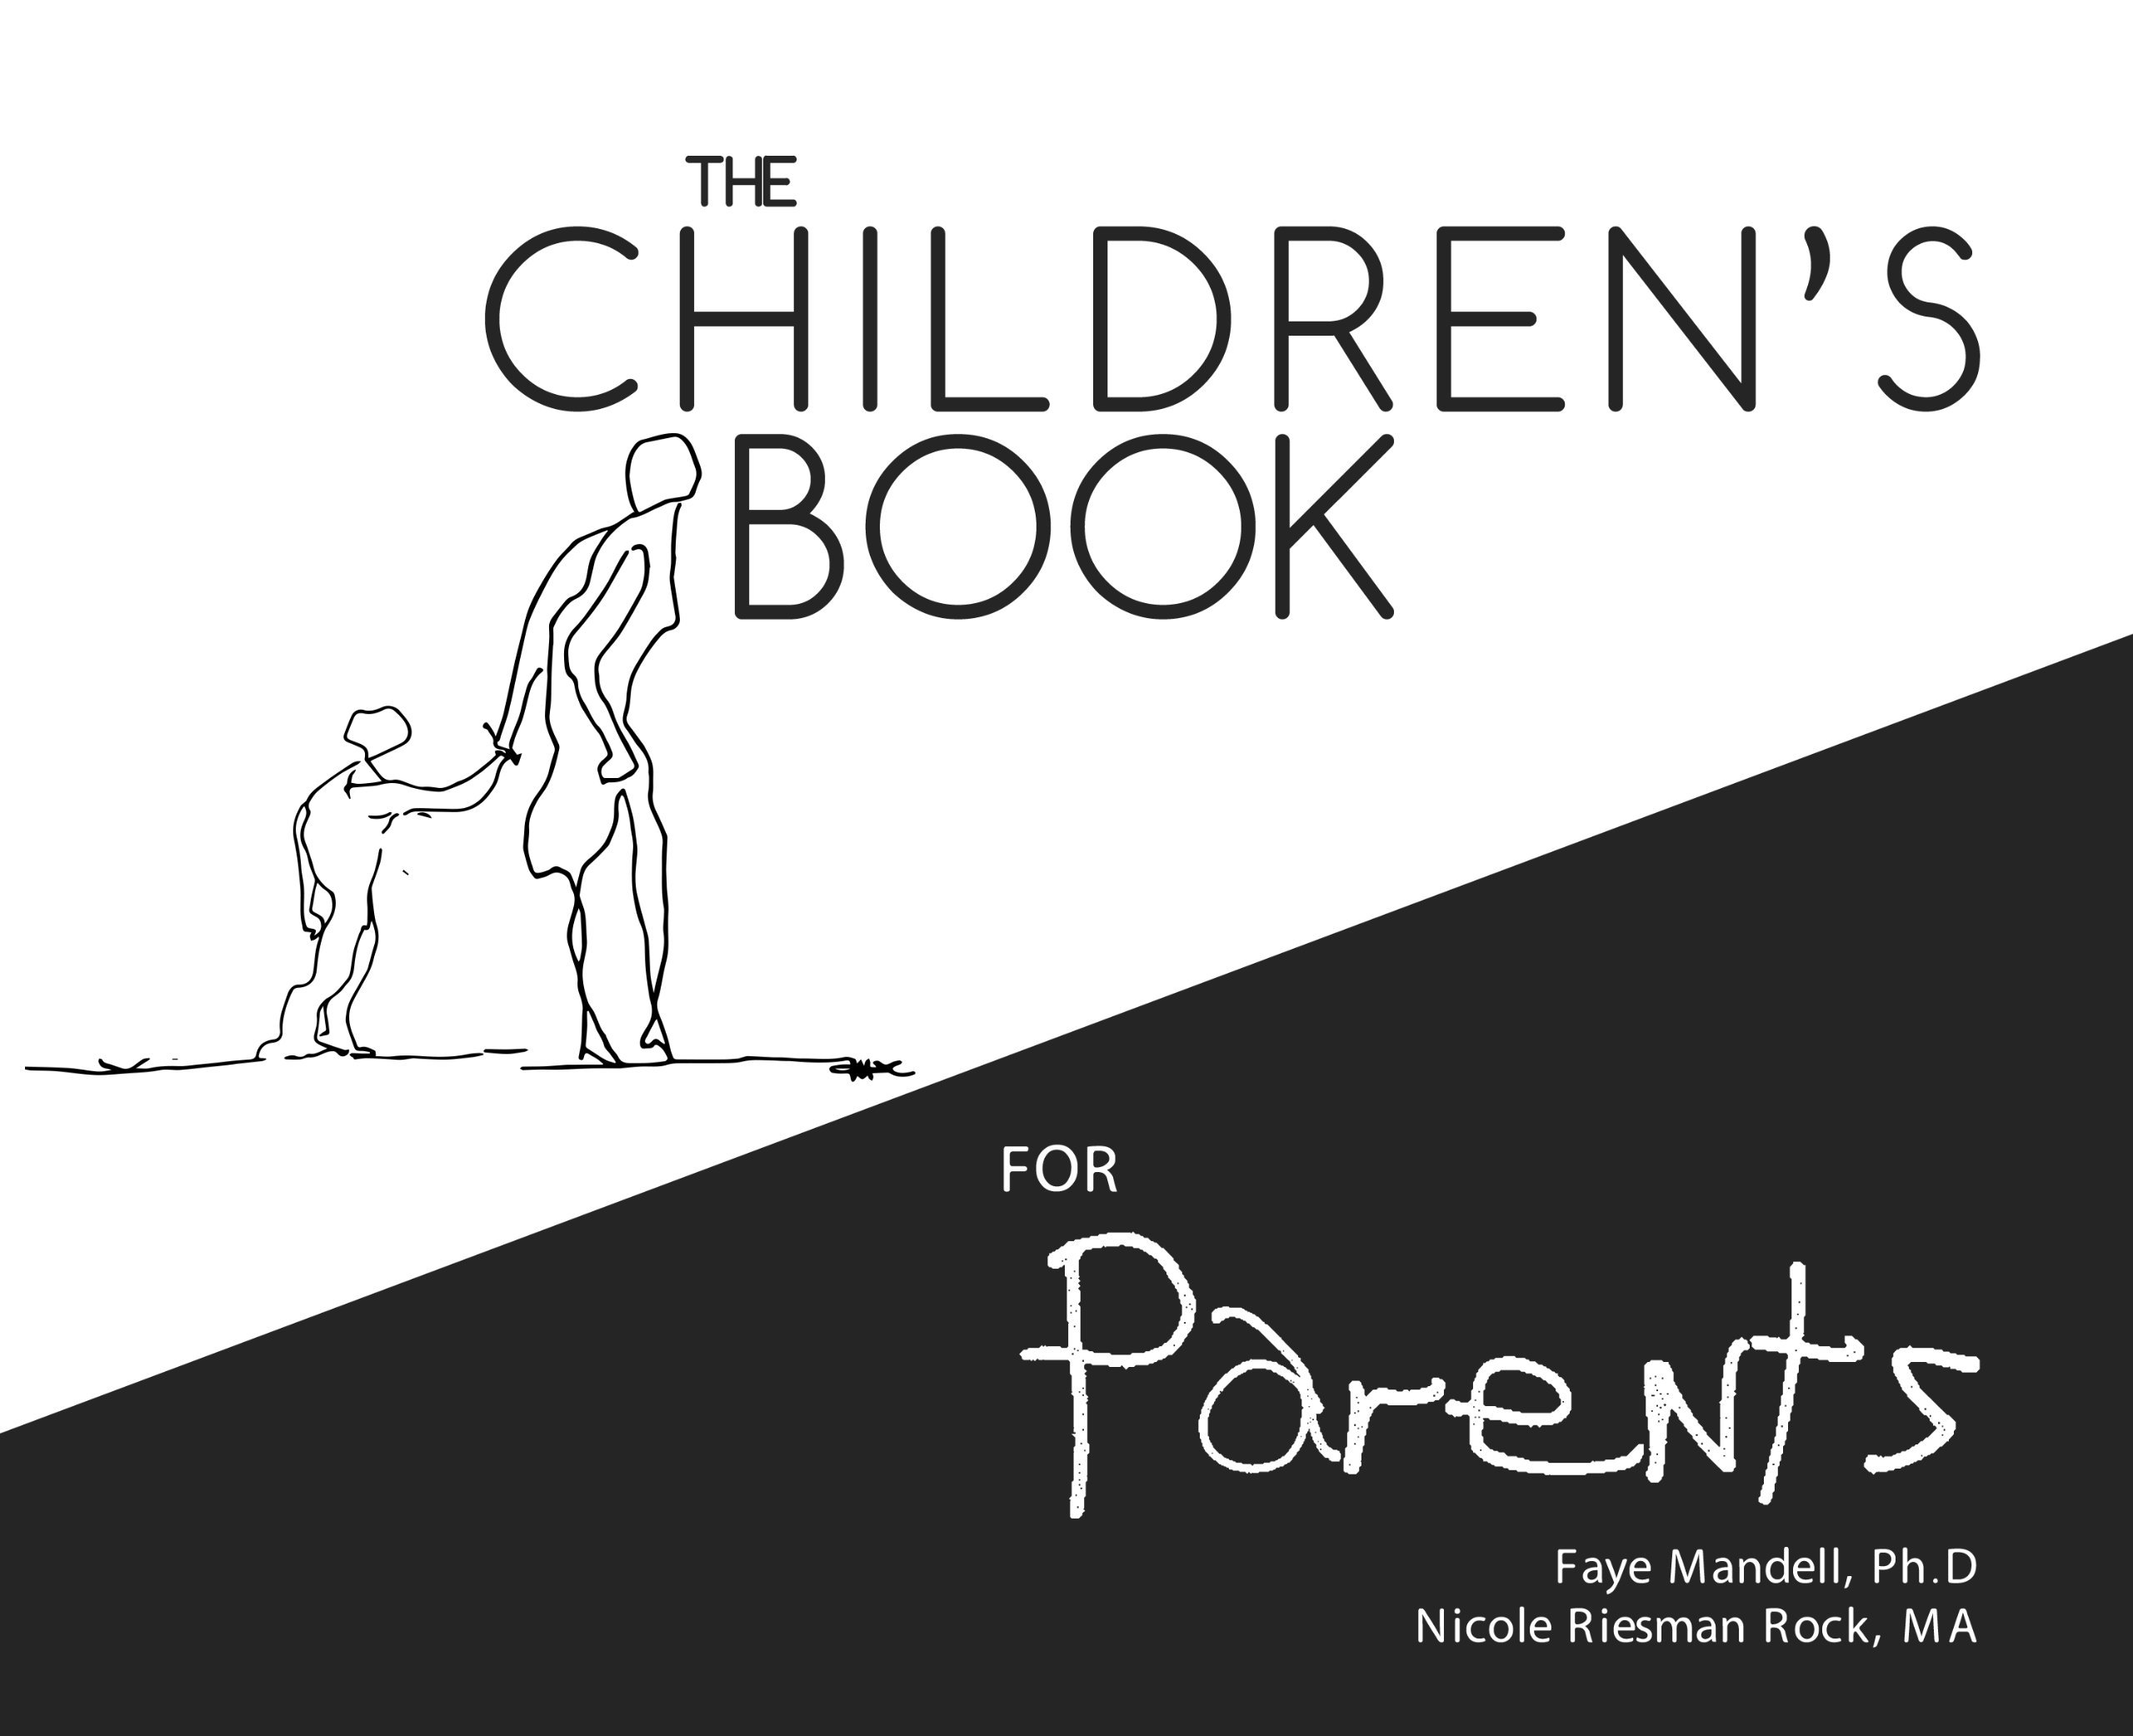 6c767b050e97b3827f4b_The_Children_s_Book_for_Parents.jpg